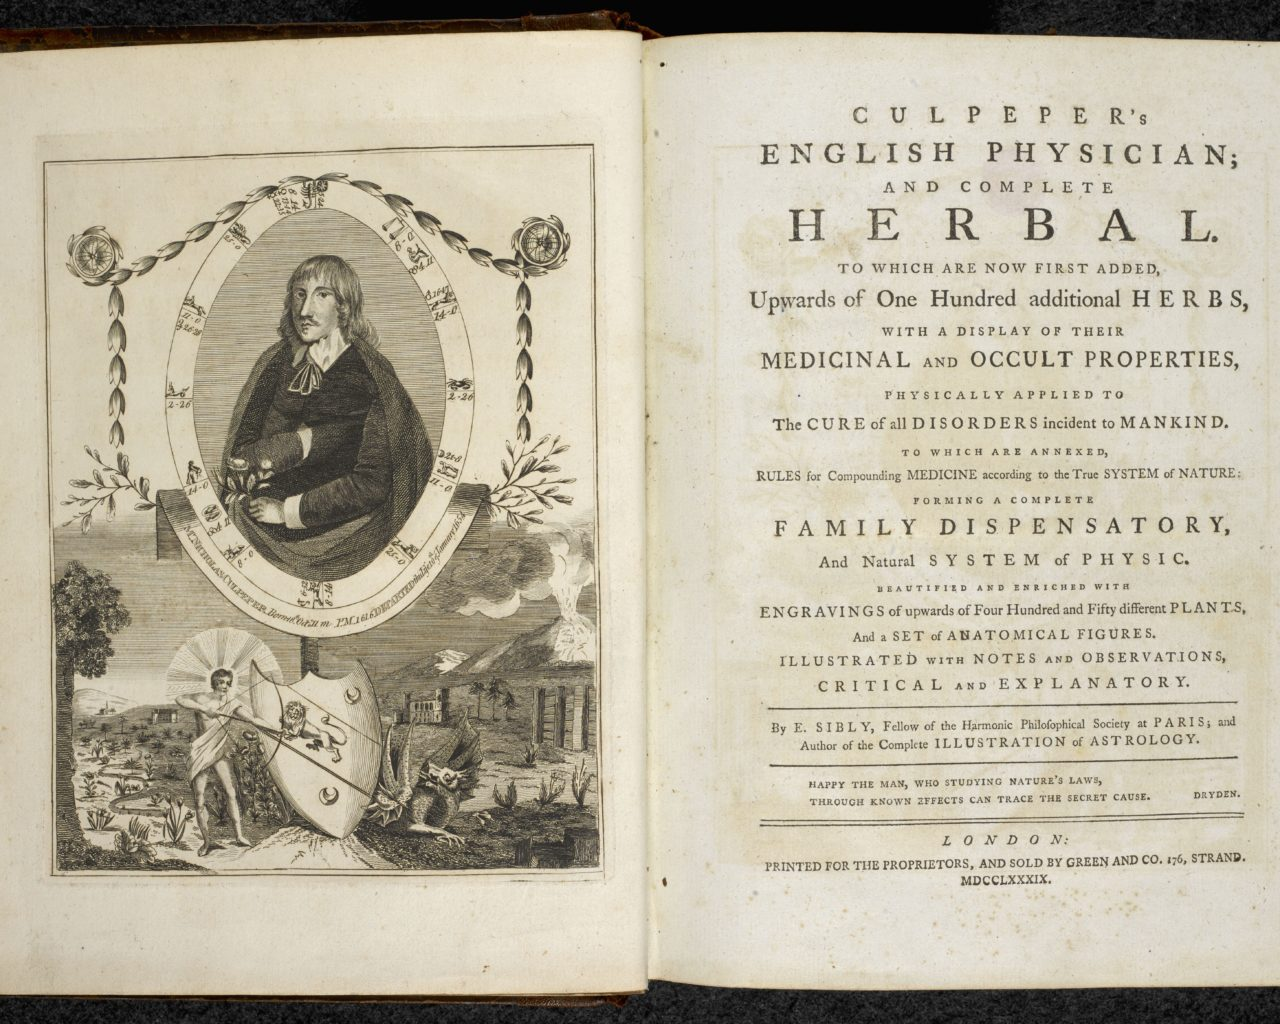 Culpeper's English physician; and complete Herbal - London, 1789 (c) British Library Board